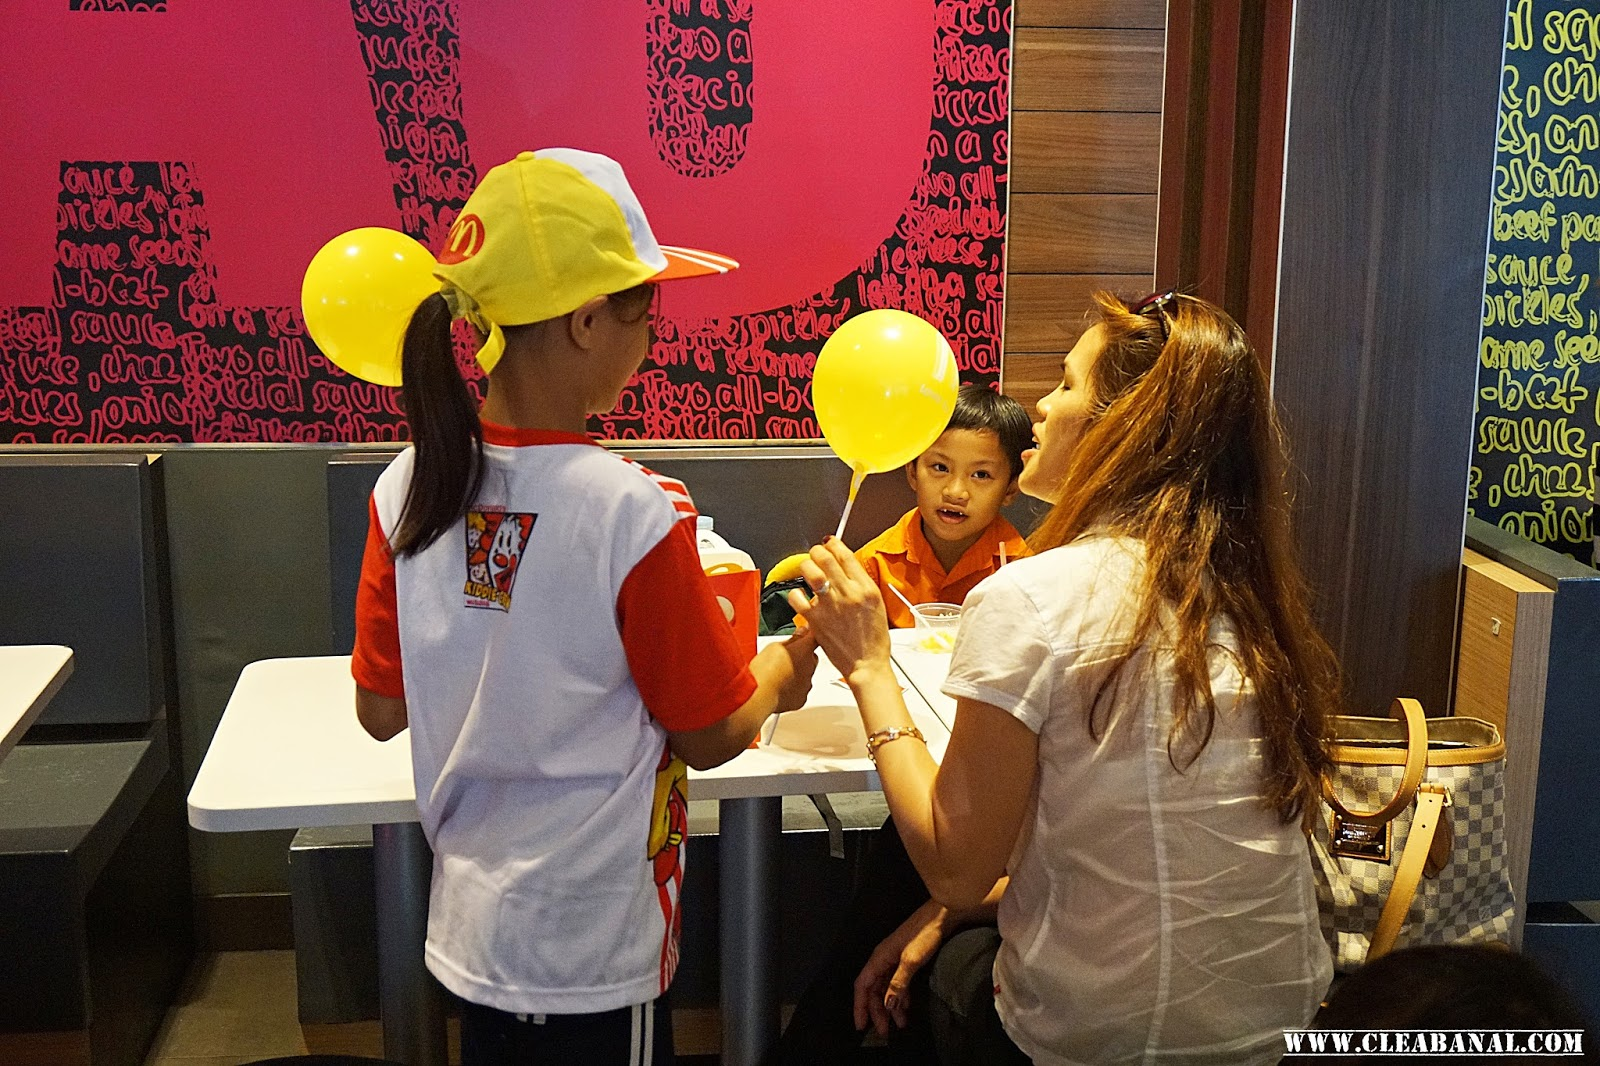 mcdonald s kiddie crew workshop 2016 clea banal it s a 5 day workshop that consists activities like serve at the counter greet customers and drive thru like a real crew member